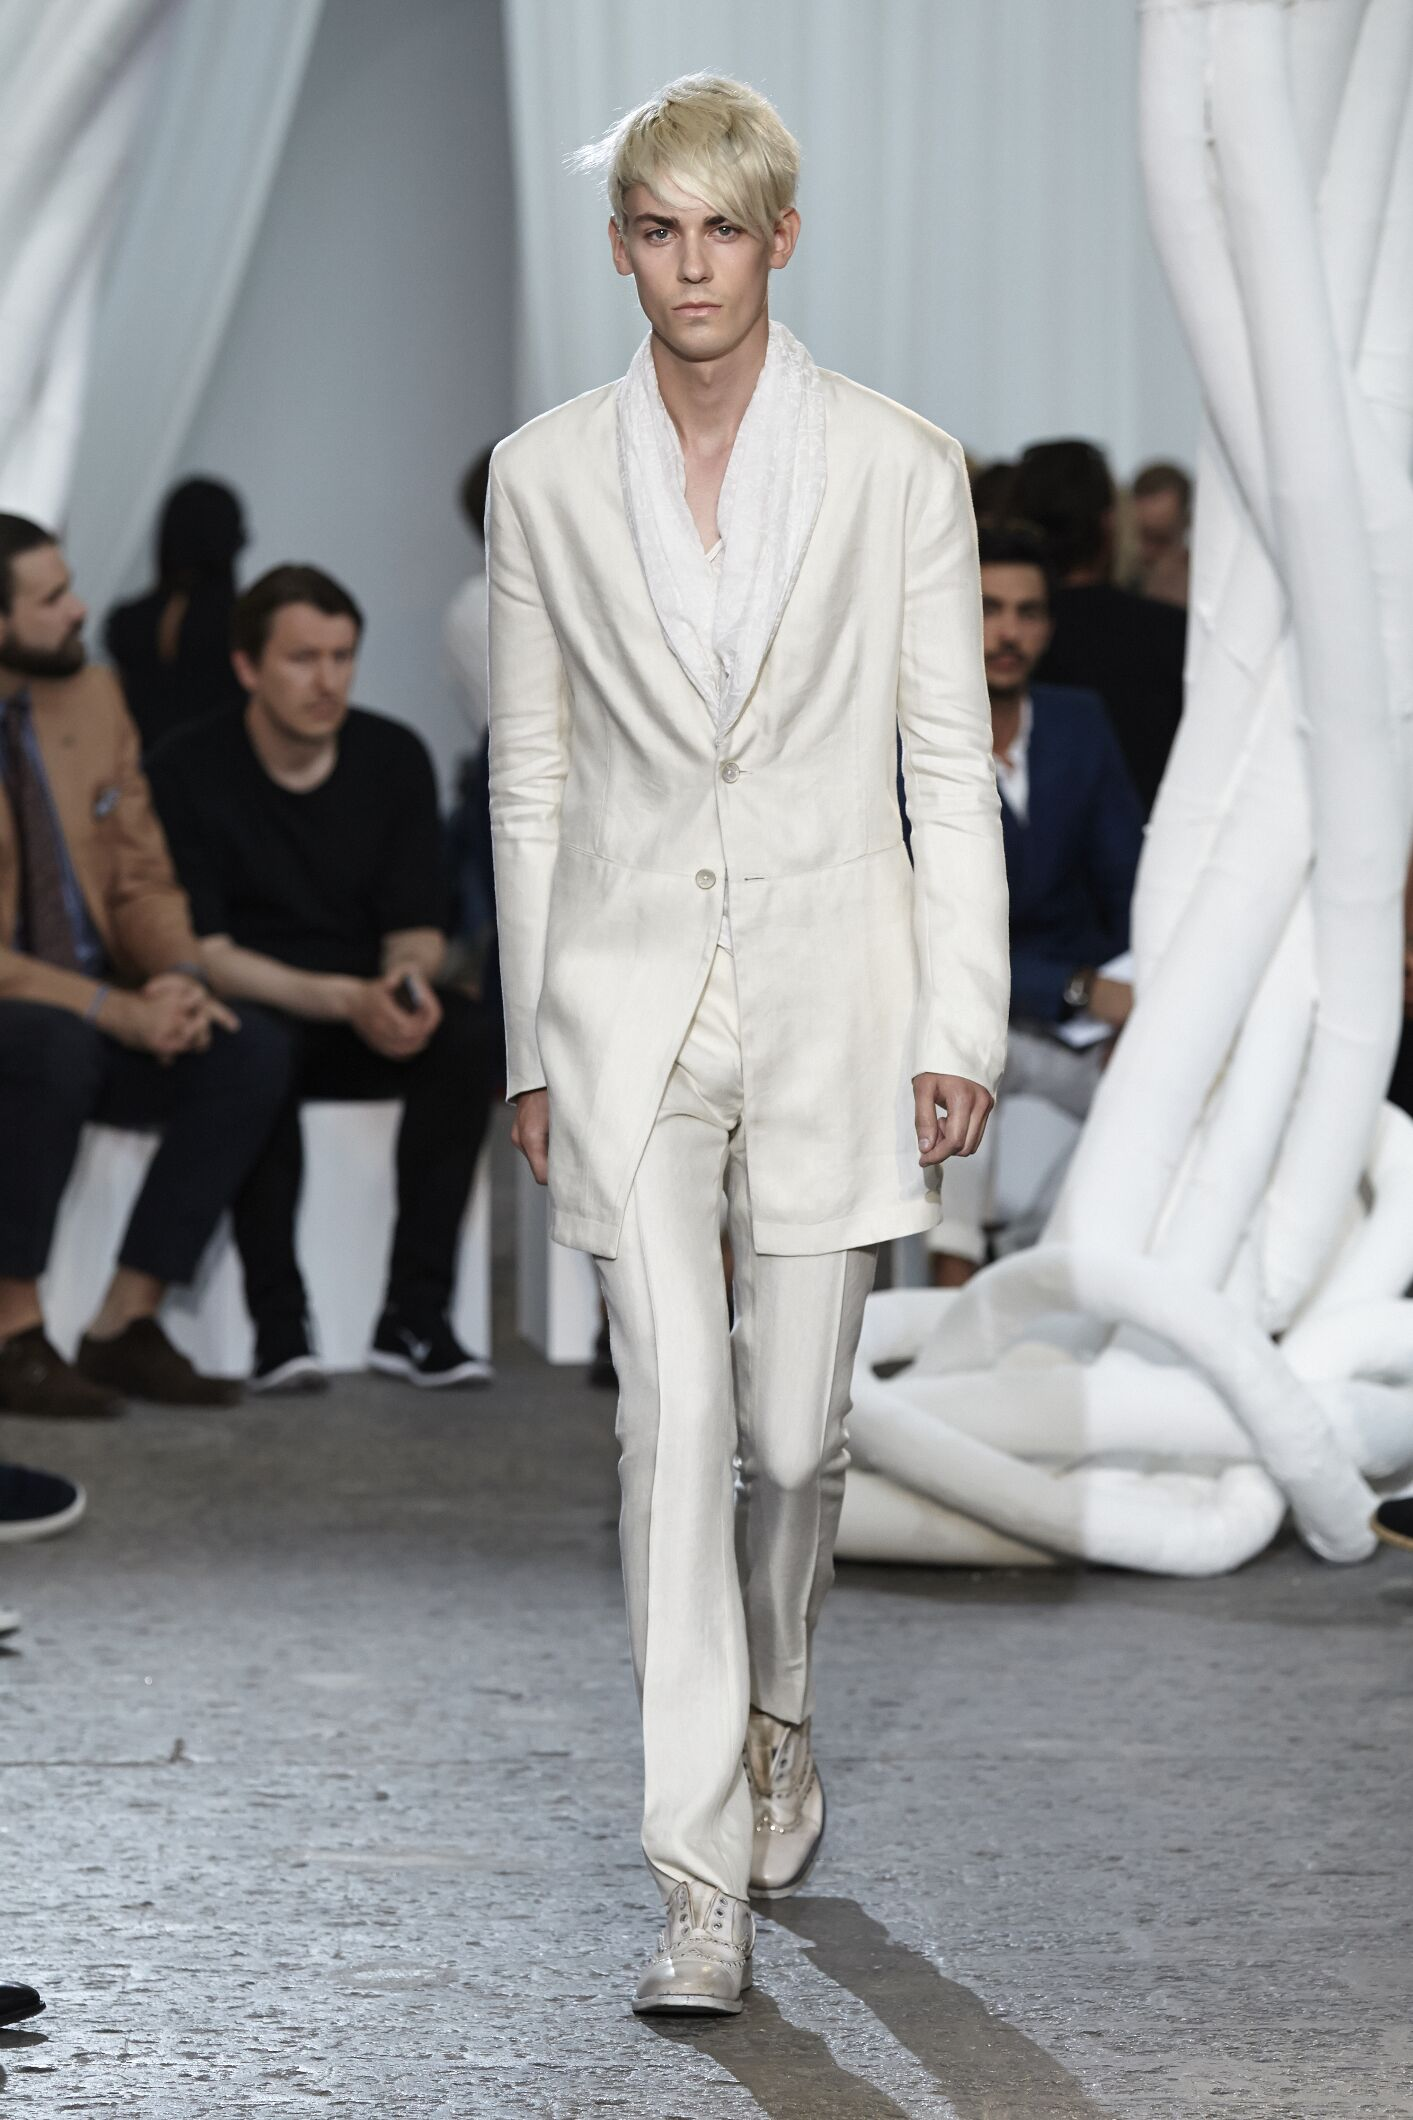 John Varvatos Summer 2015 Catwalk